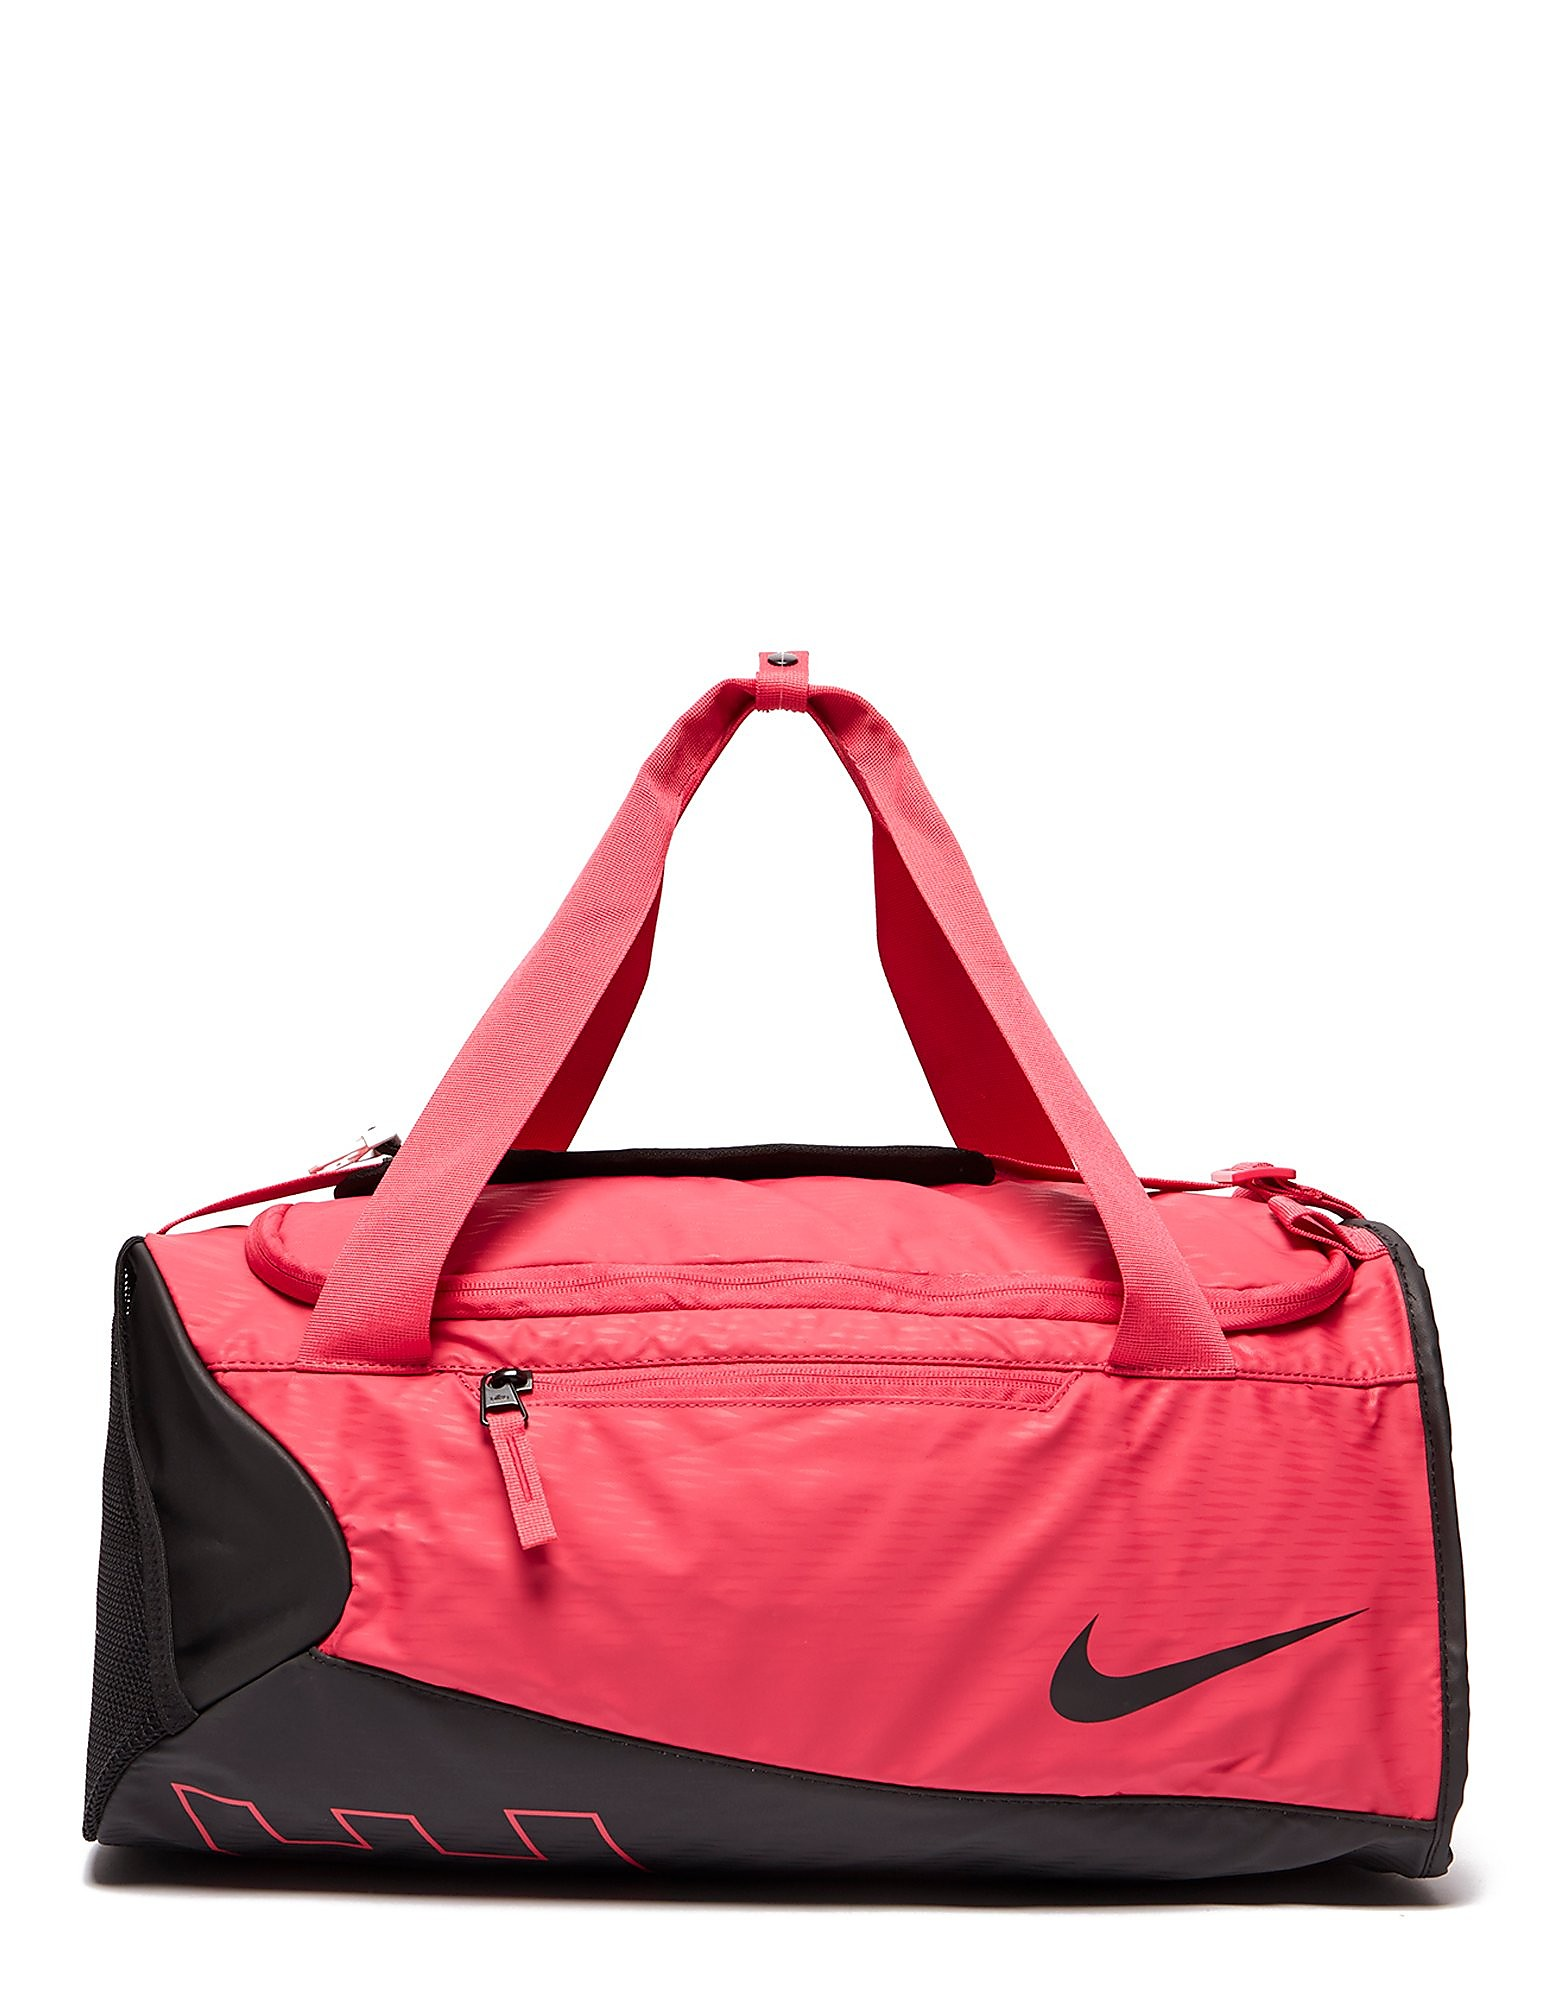 Nike Alpha Adapt Crossbody Duffle Bag